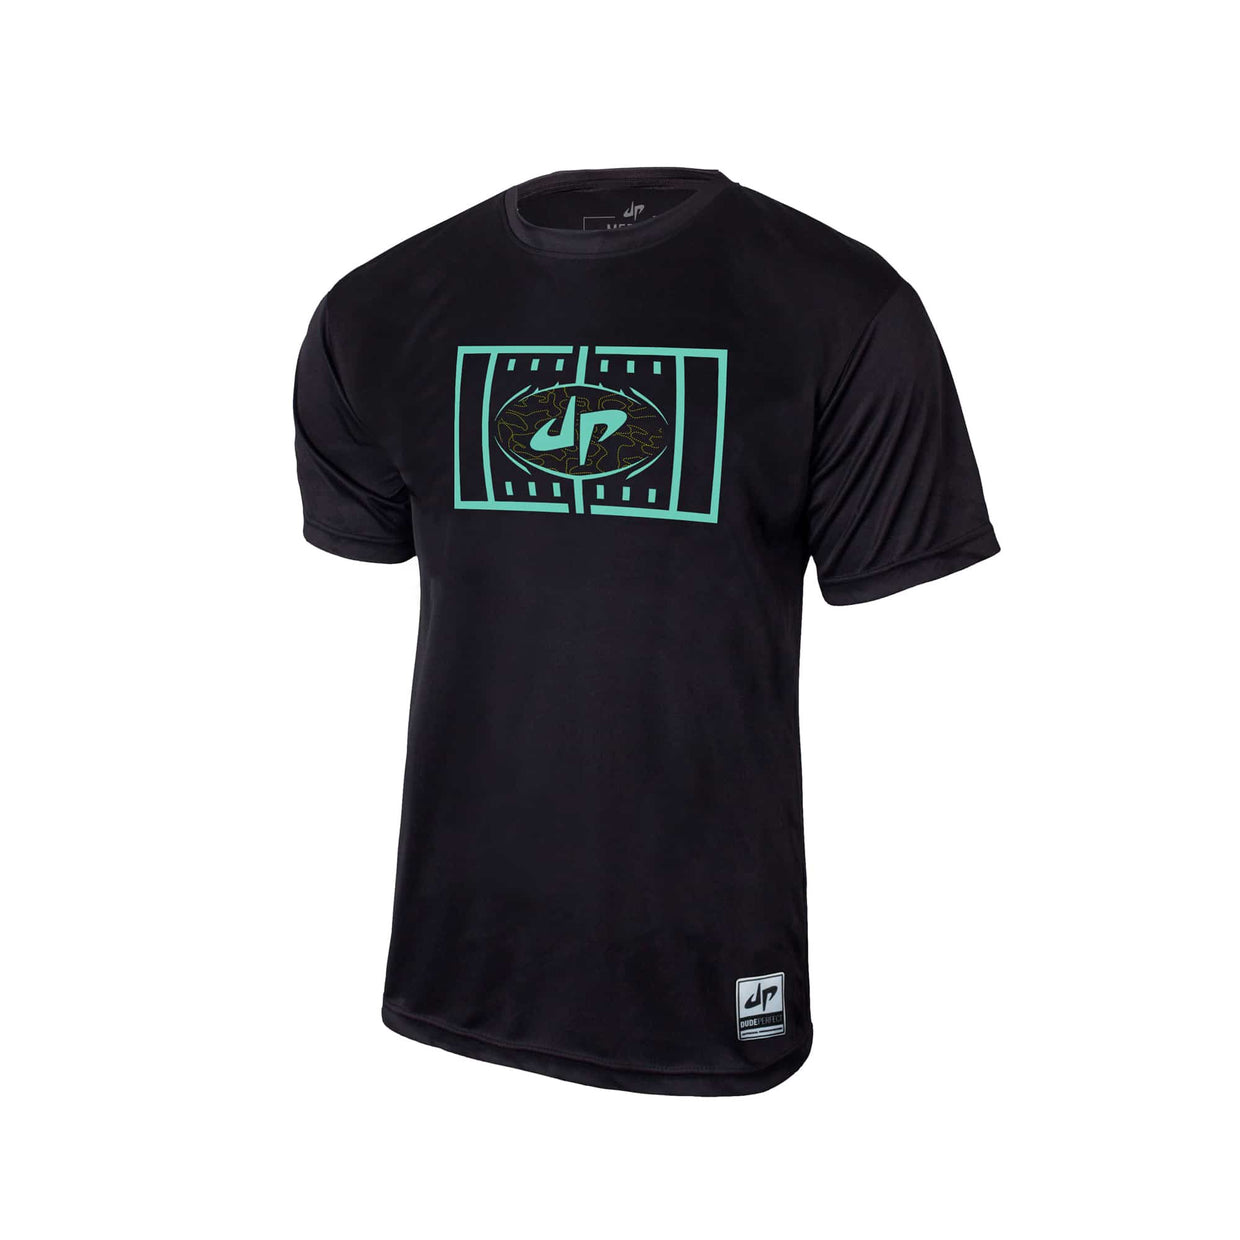 Crushing The Gridiron III Performance Tee